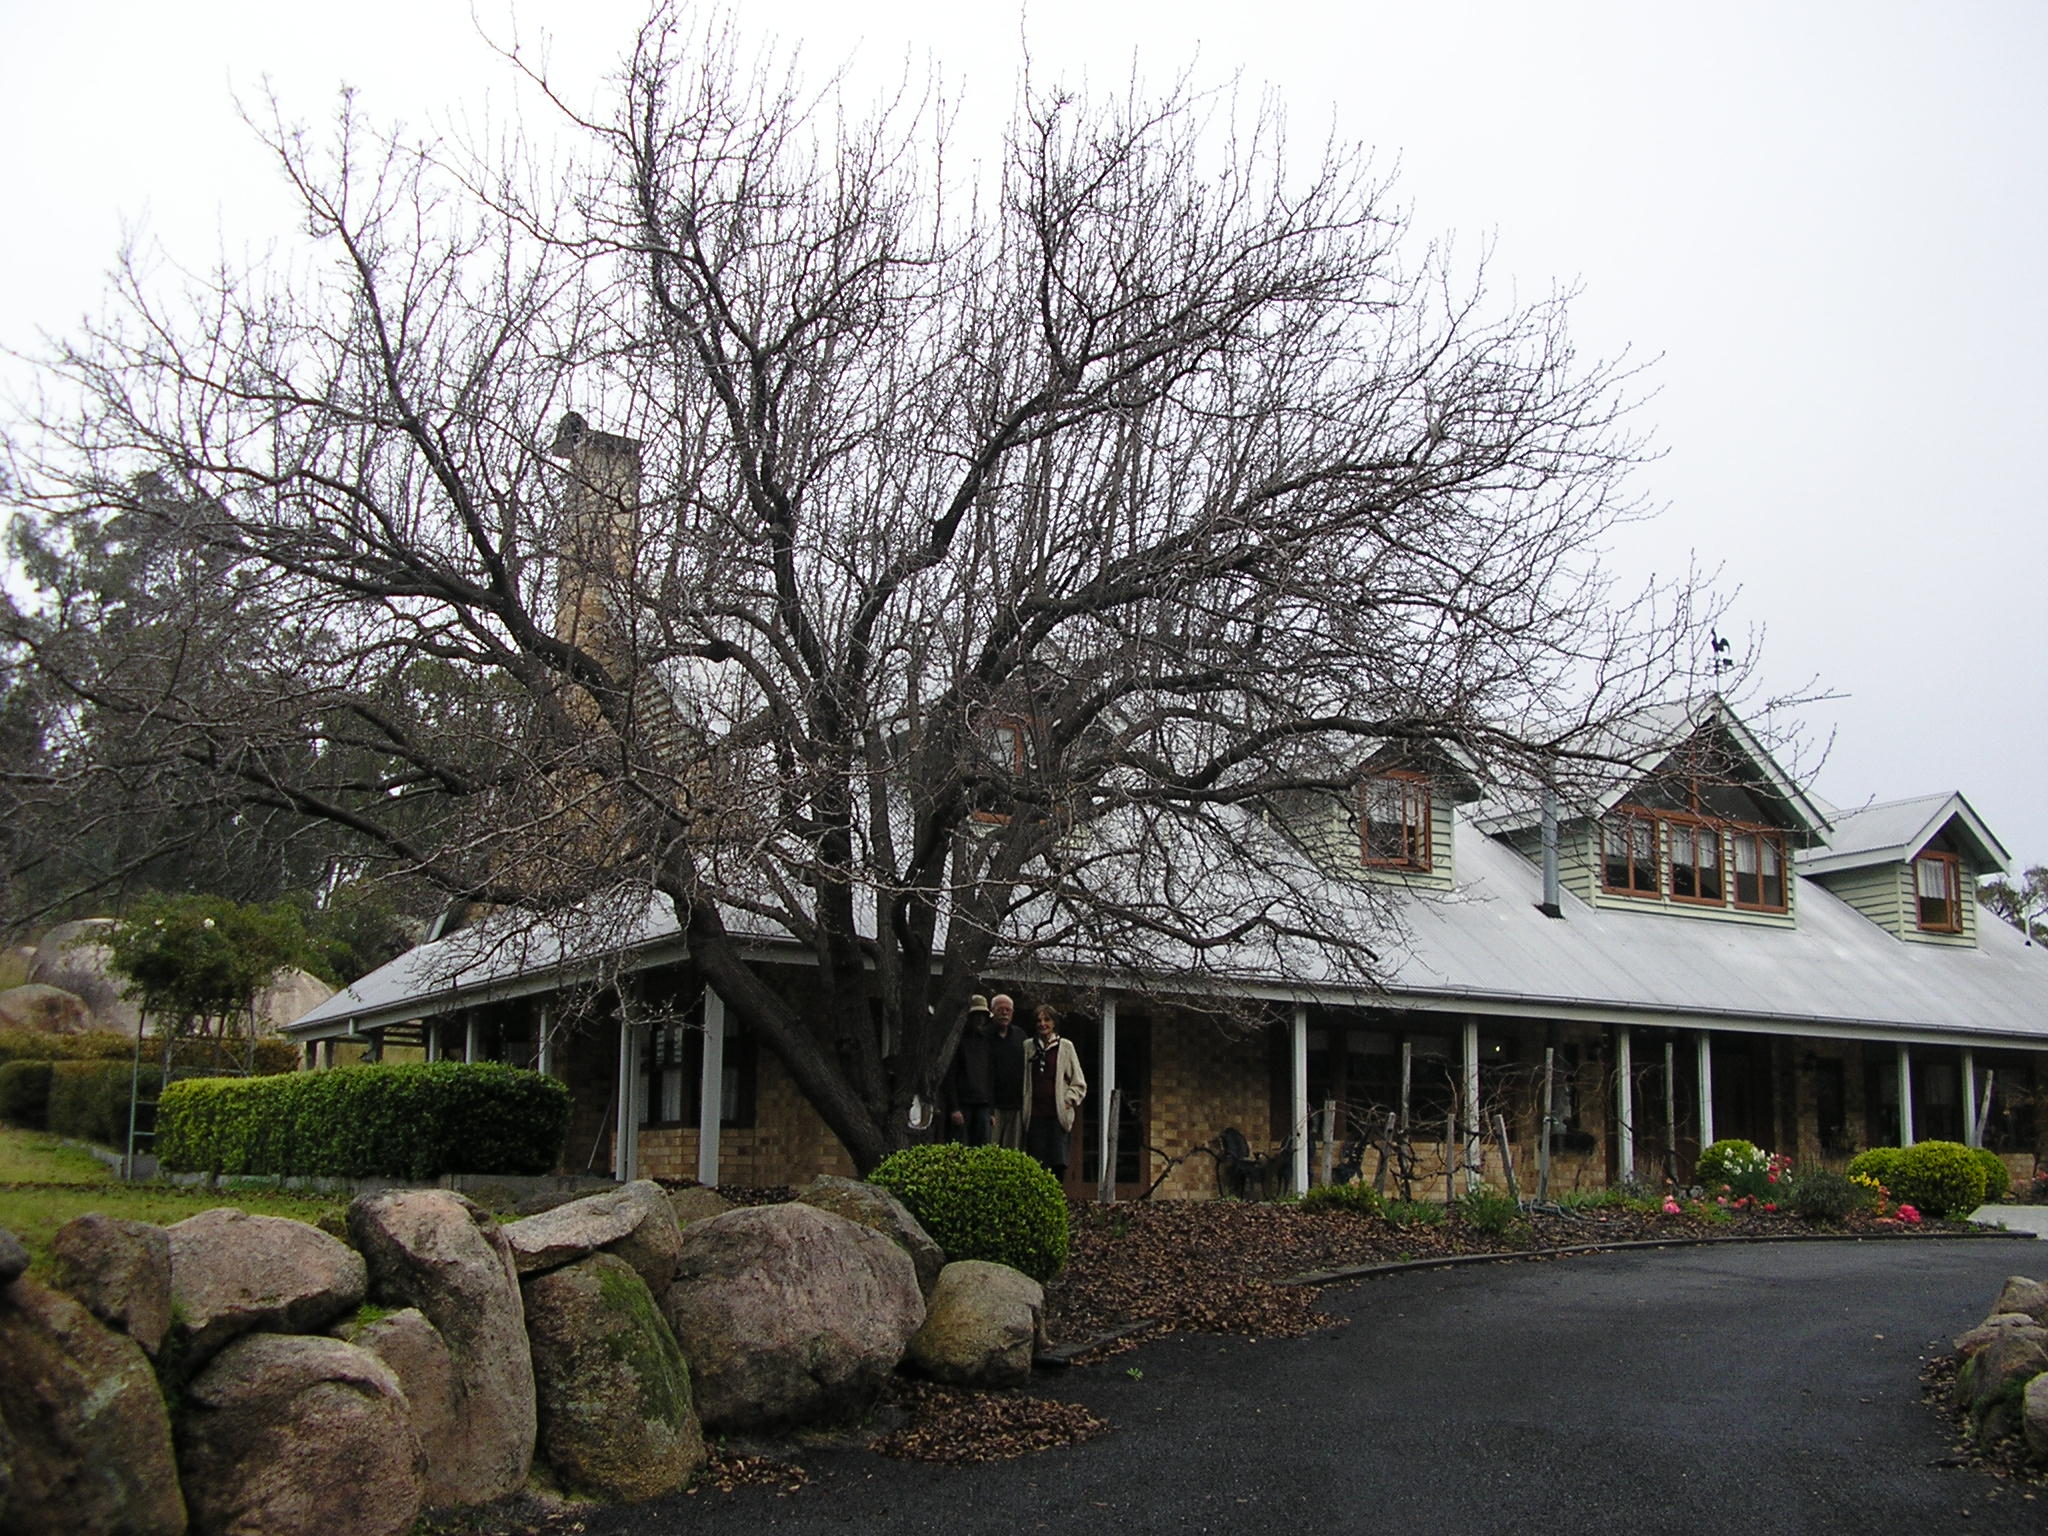 small boutique hotel plus self-catering lodge/restaurant/bar/functions/bush walk